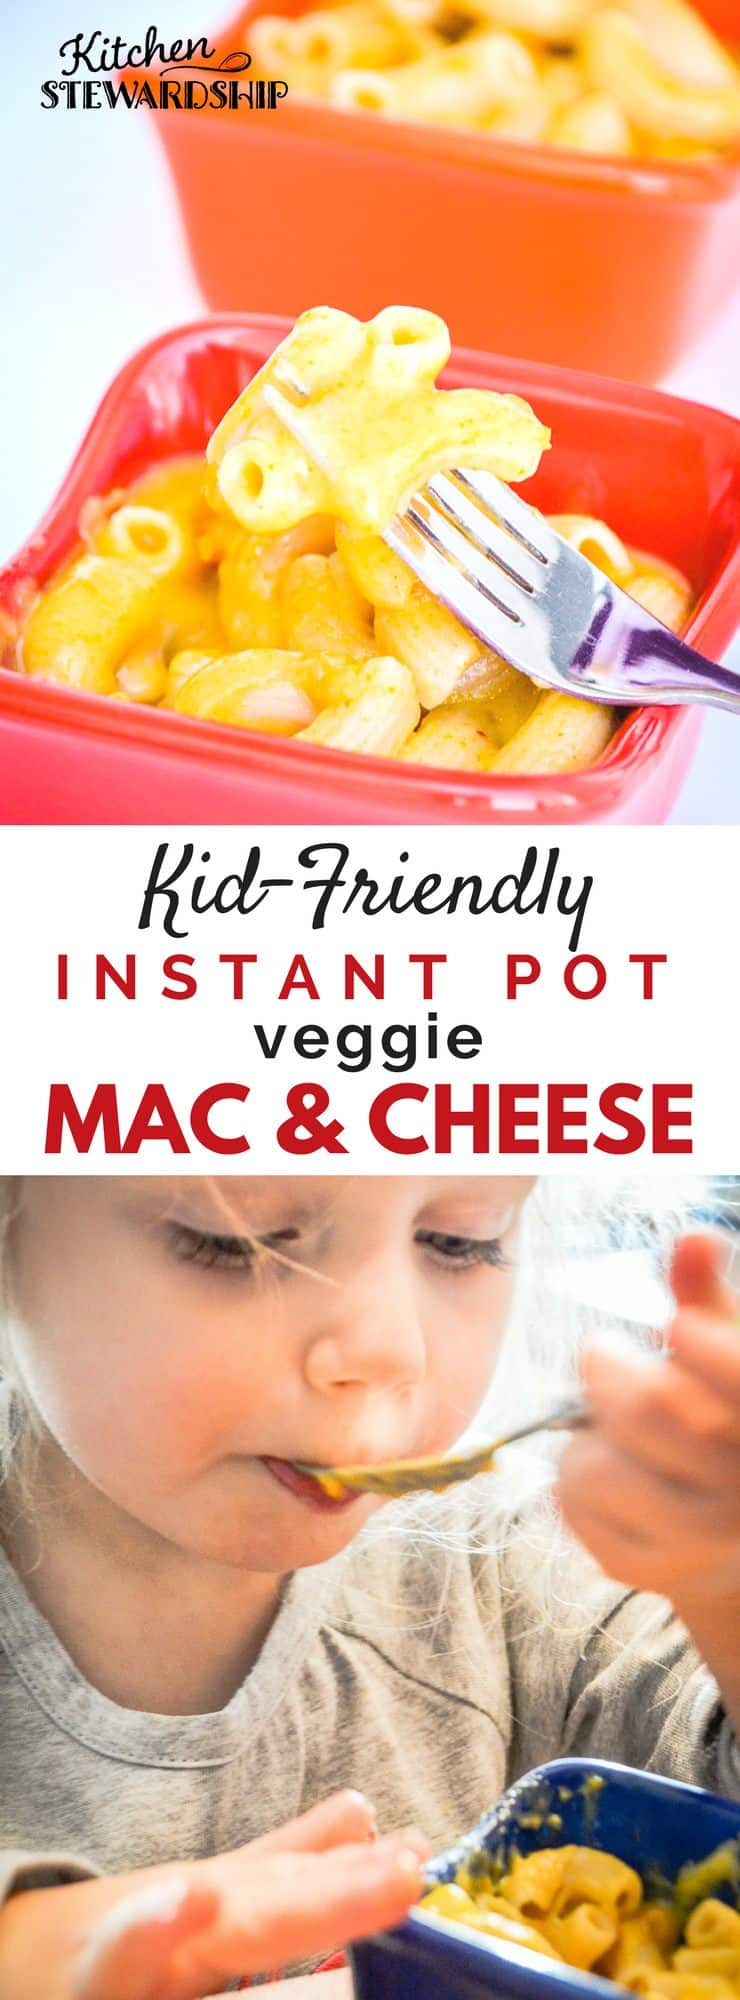 Instant Pot Mac & Cheese - Gluten free, easy and delicious. Kid friendly dinner in no time! Full of healthy ingredients....kid tested, mom approved! Easy and healthy weeknight dinner.